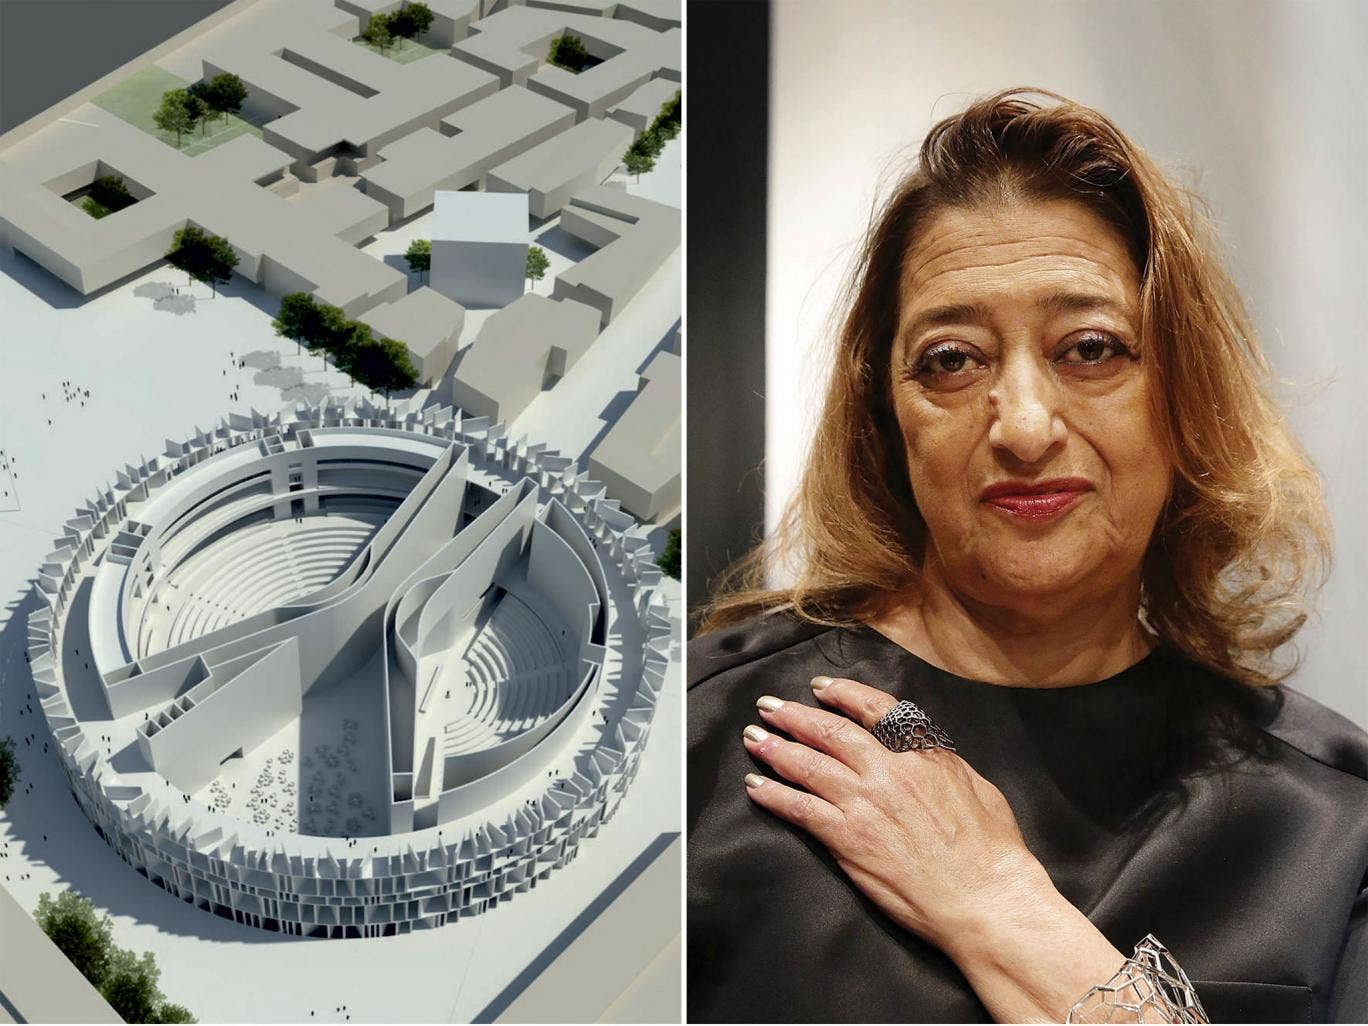 The design by British studio Assemblage, left, won the open competition, with Zaha Hadid's entry coming third